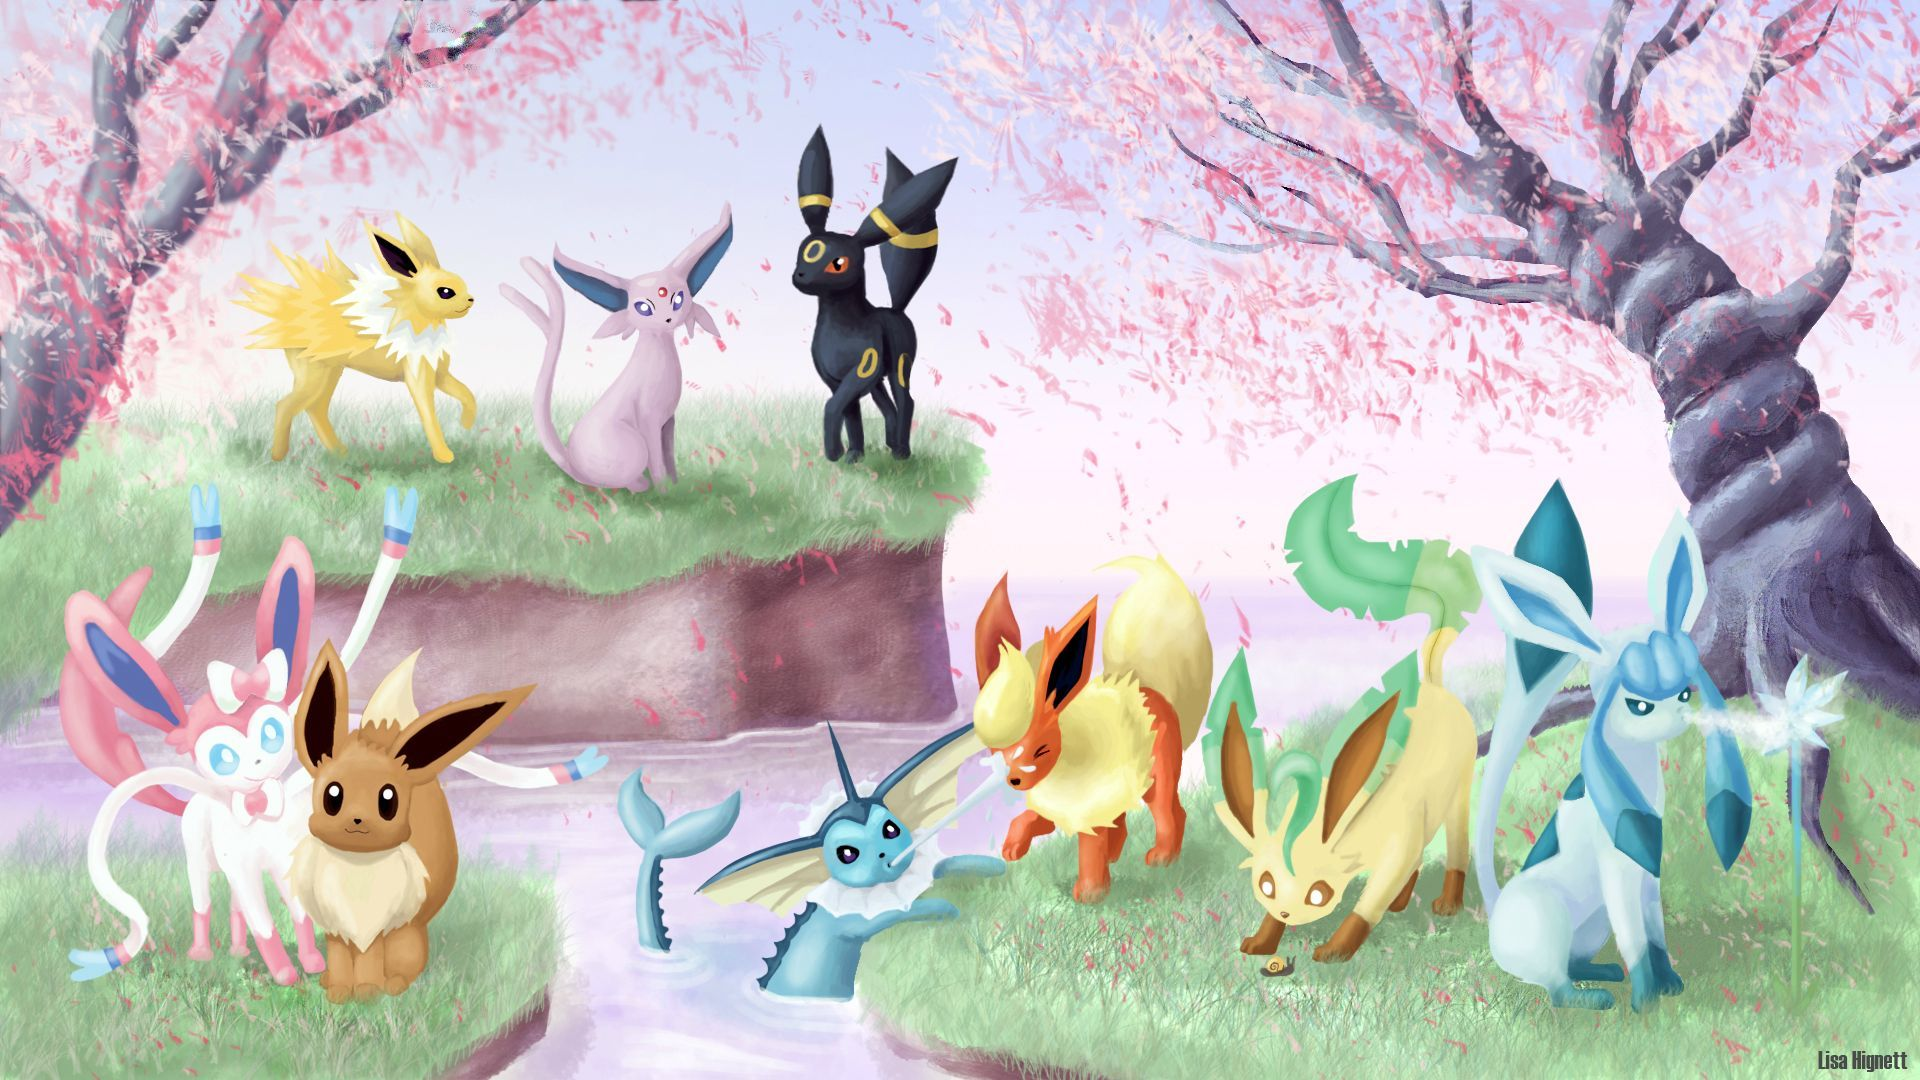 Eeveelutions Wallpapers Hd Free Download Pokemon Eeveelutions Eevee Wallpaper Pokemon Eevee